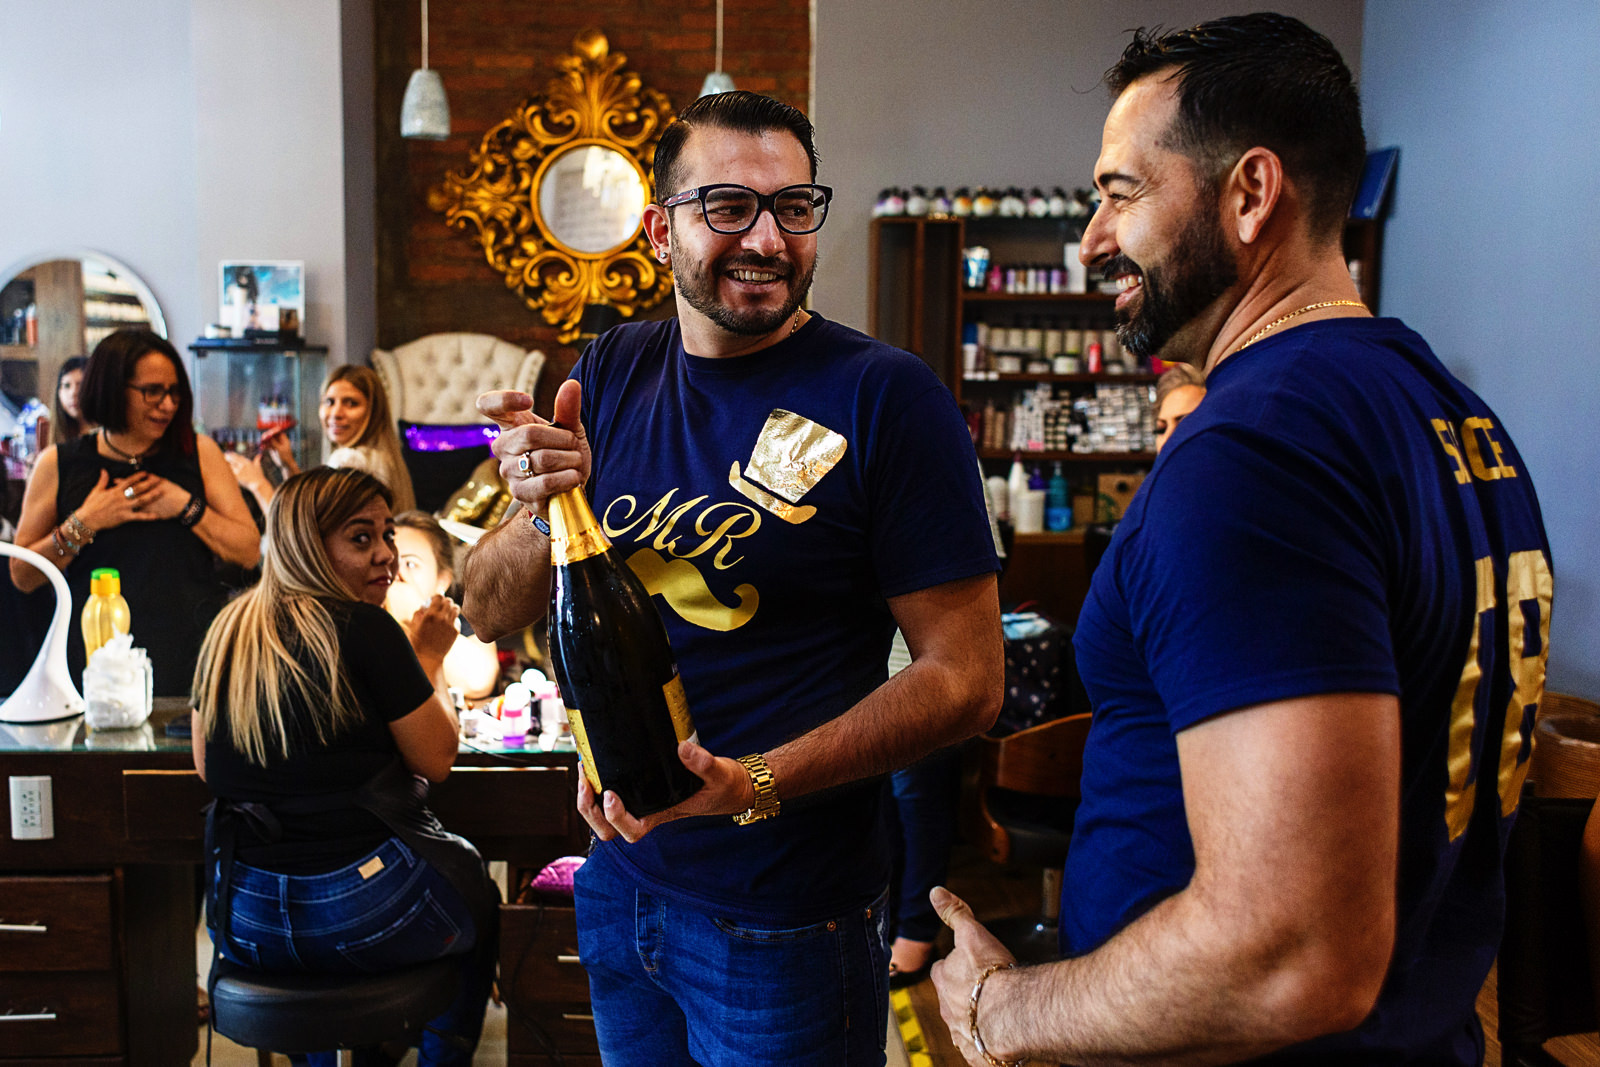 Gay couple opening a bottle of champagne during the getting ready of their wedding, at their beauty salon.